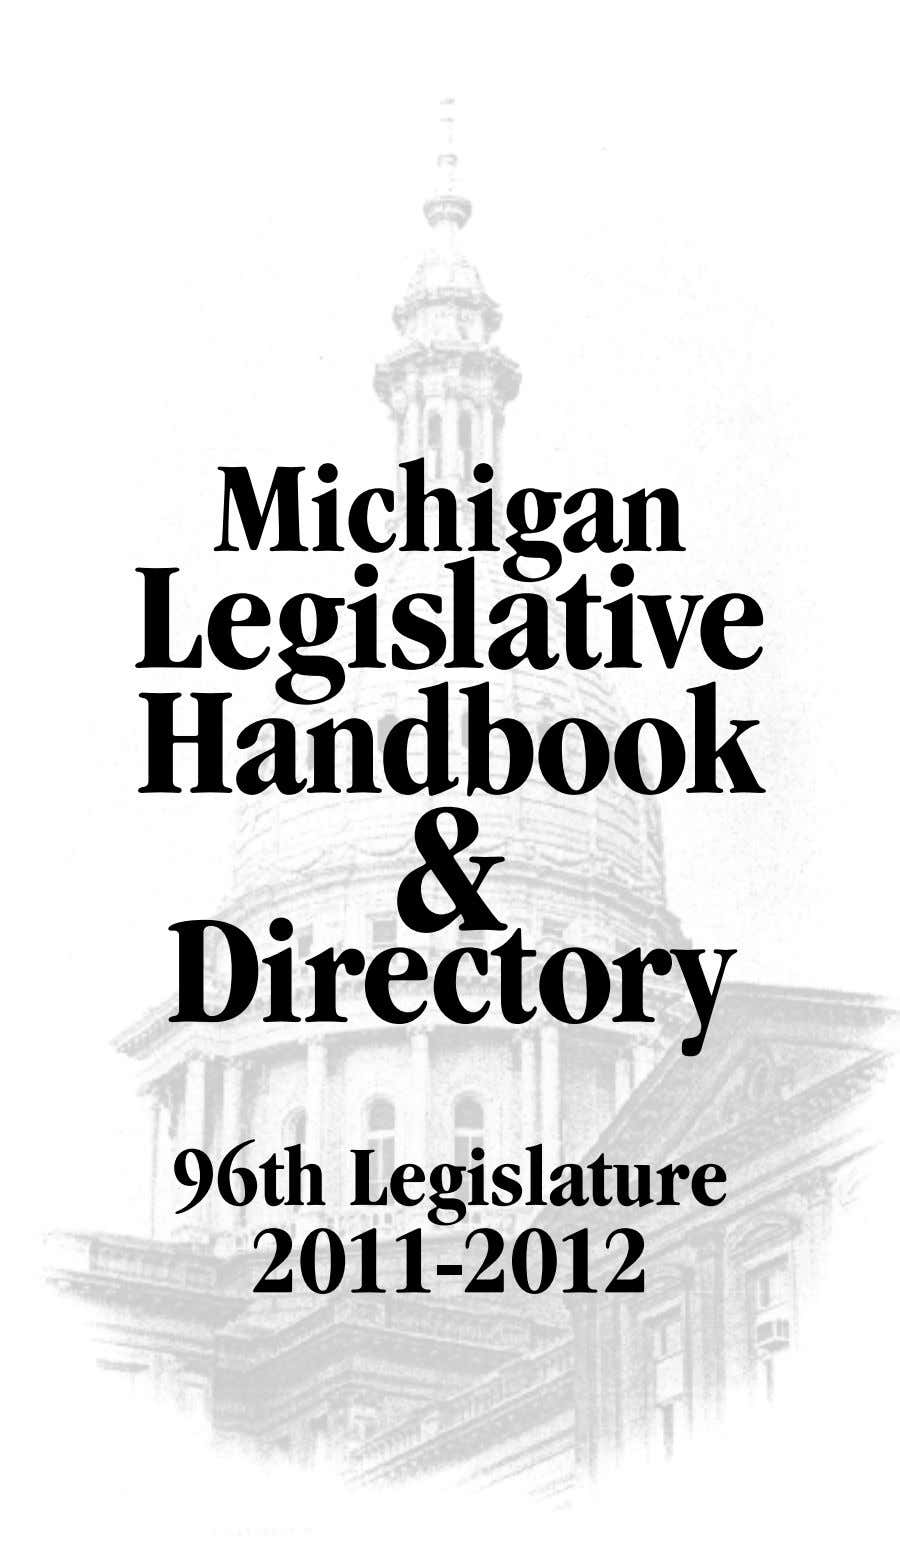 Michigan Legislative Handbook & Directory 96th Legislature 2011-2012